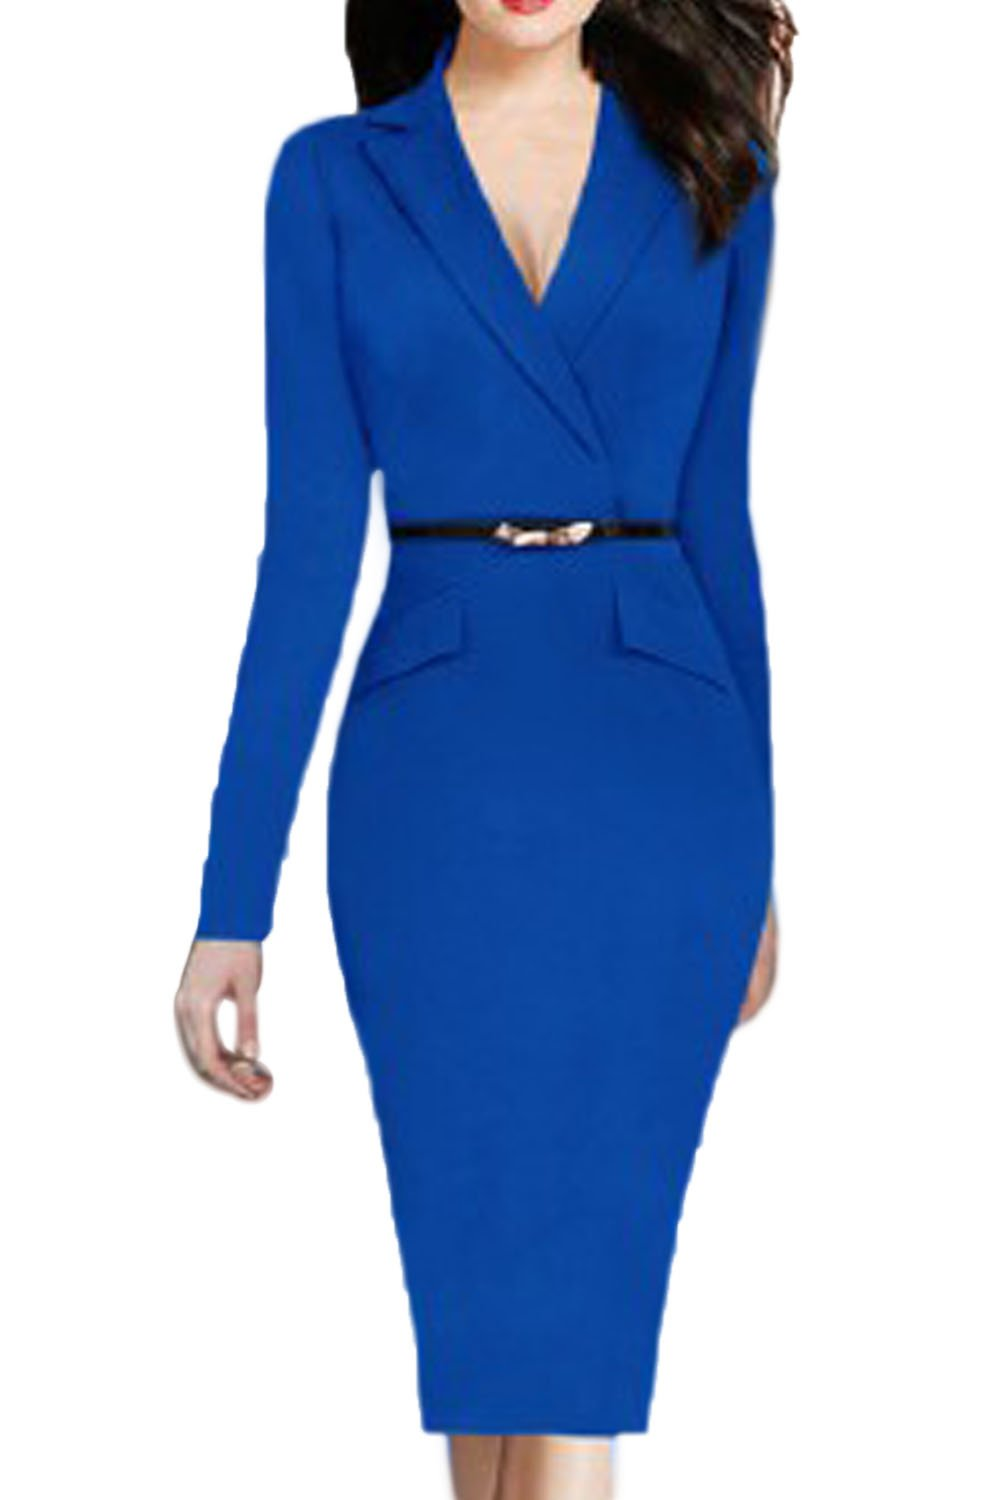 Women Elegant Long Sleeve Office A-line Peplum Bottom Dress With Belt CAK69A